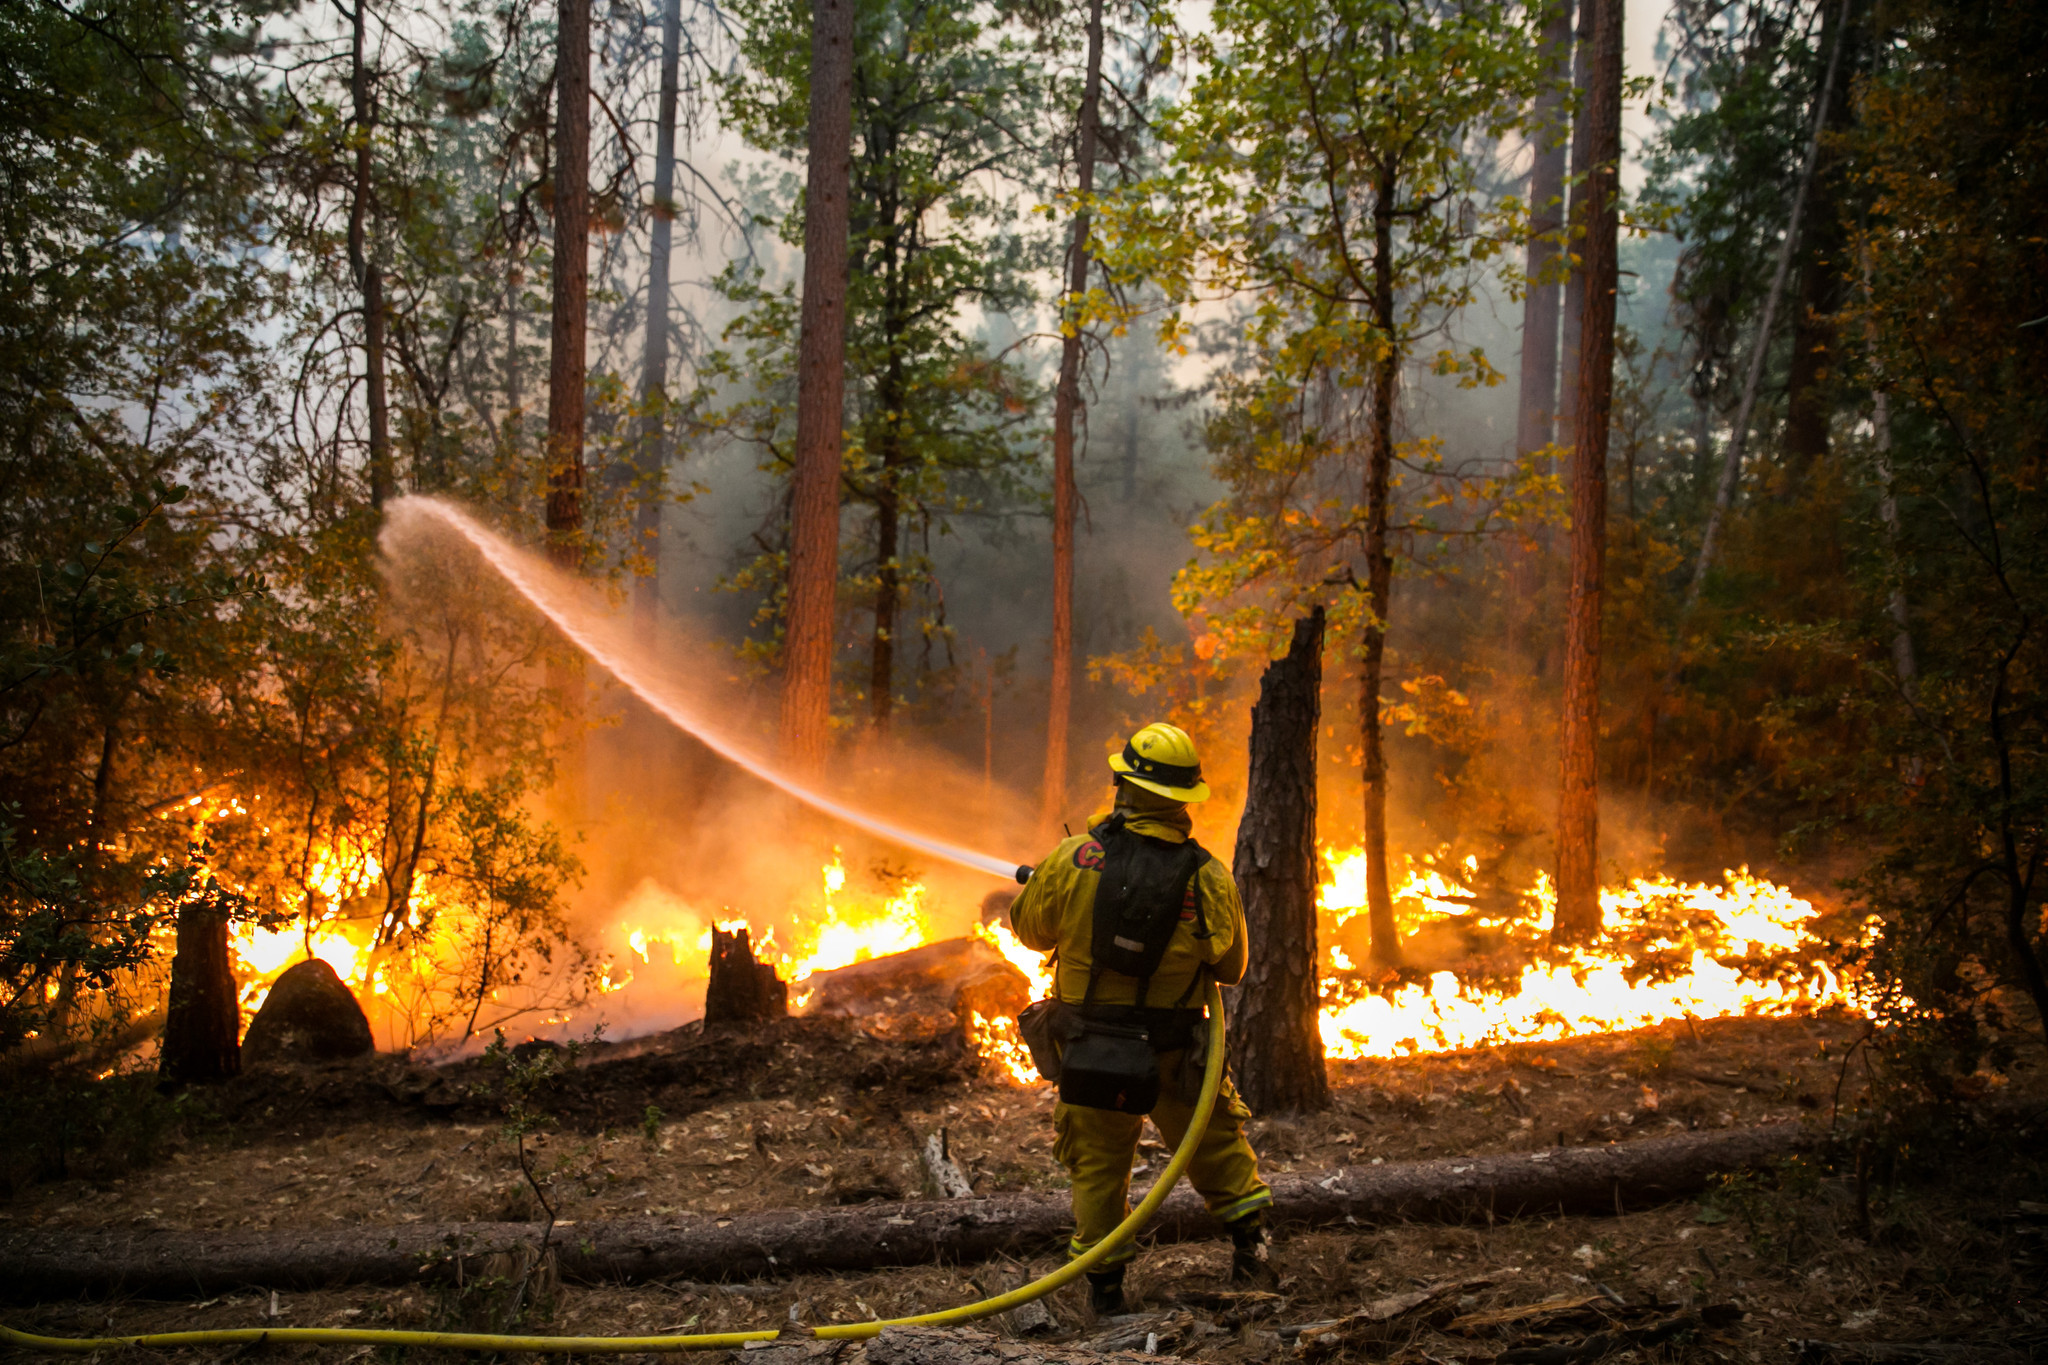 More Evacuations Ordered As Deadly Wildfires Scorch Northern California